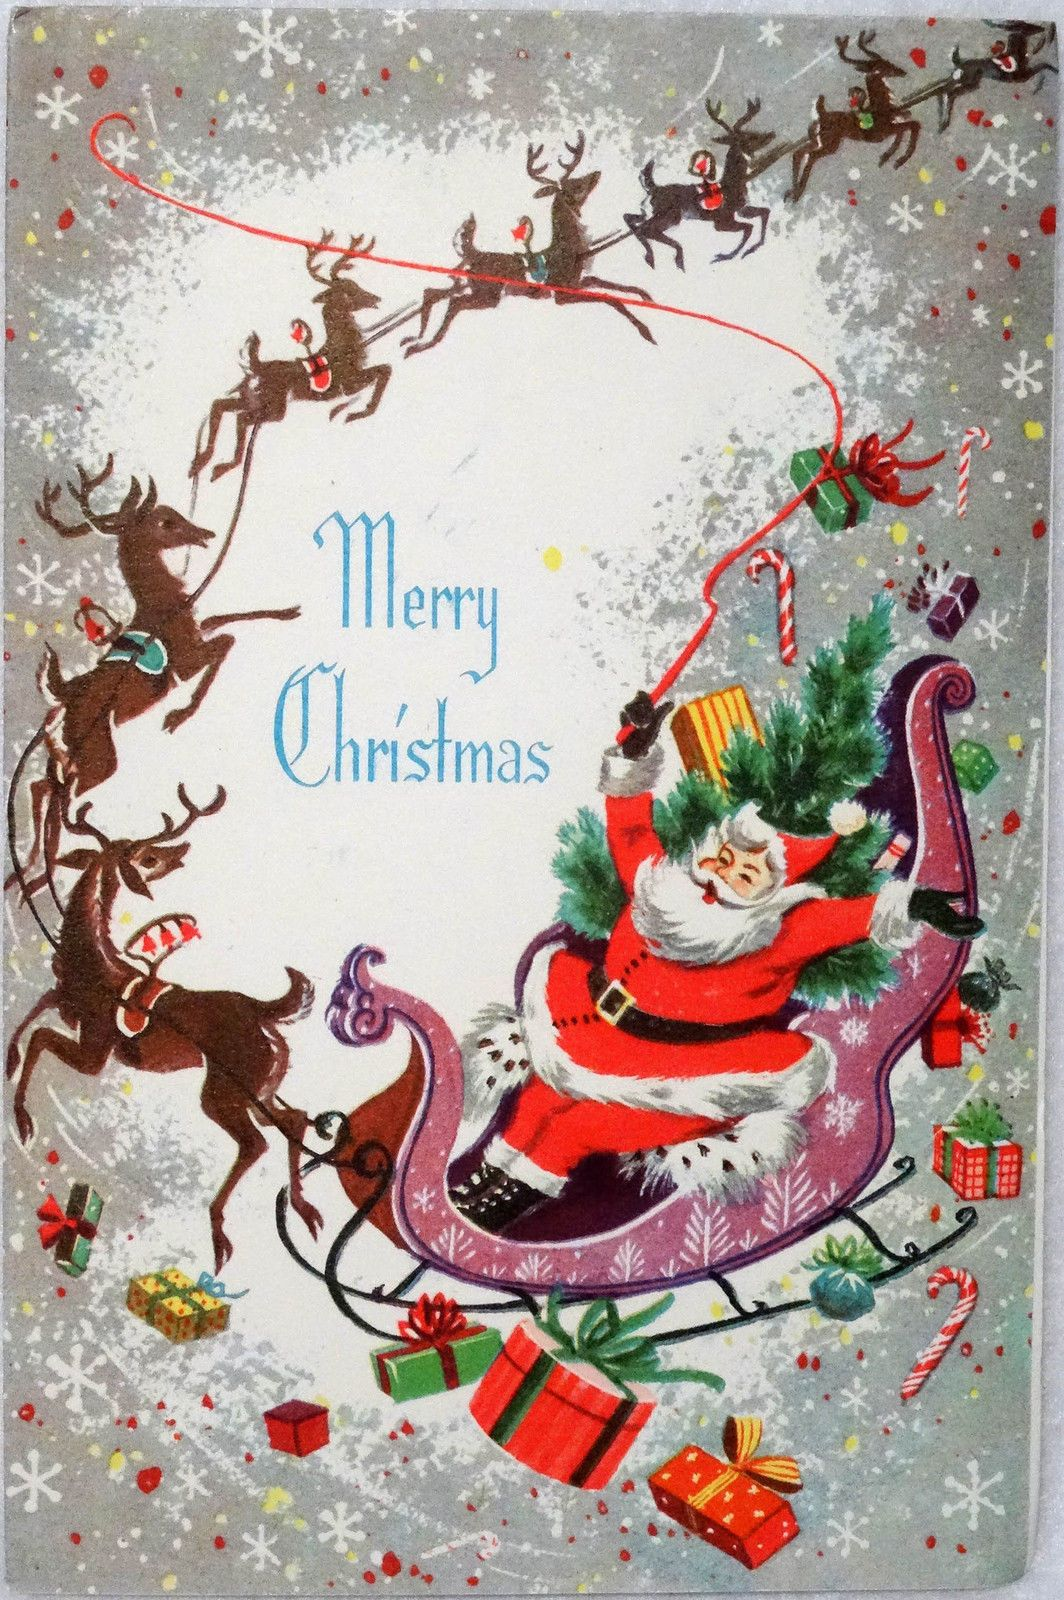 1500 free paper dolls christmas gifts artist arielle gabriels the mid century santa reindeer sleigh vintage christmas card greeting in collectibles paper vintage greeting cards christmas kristyandbryce Choice Image